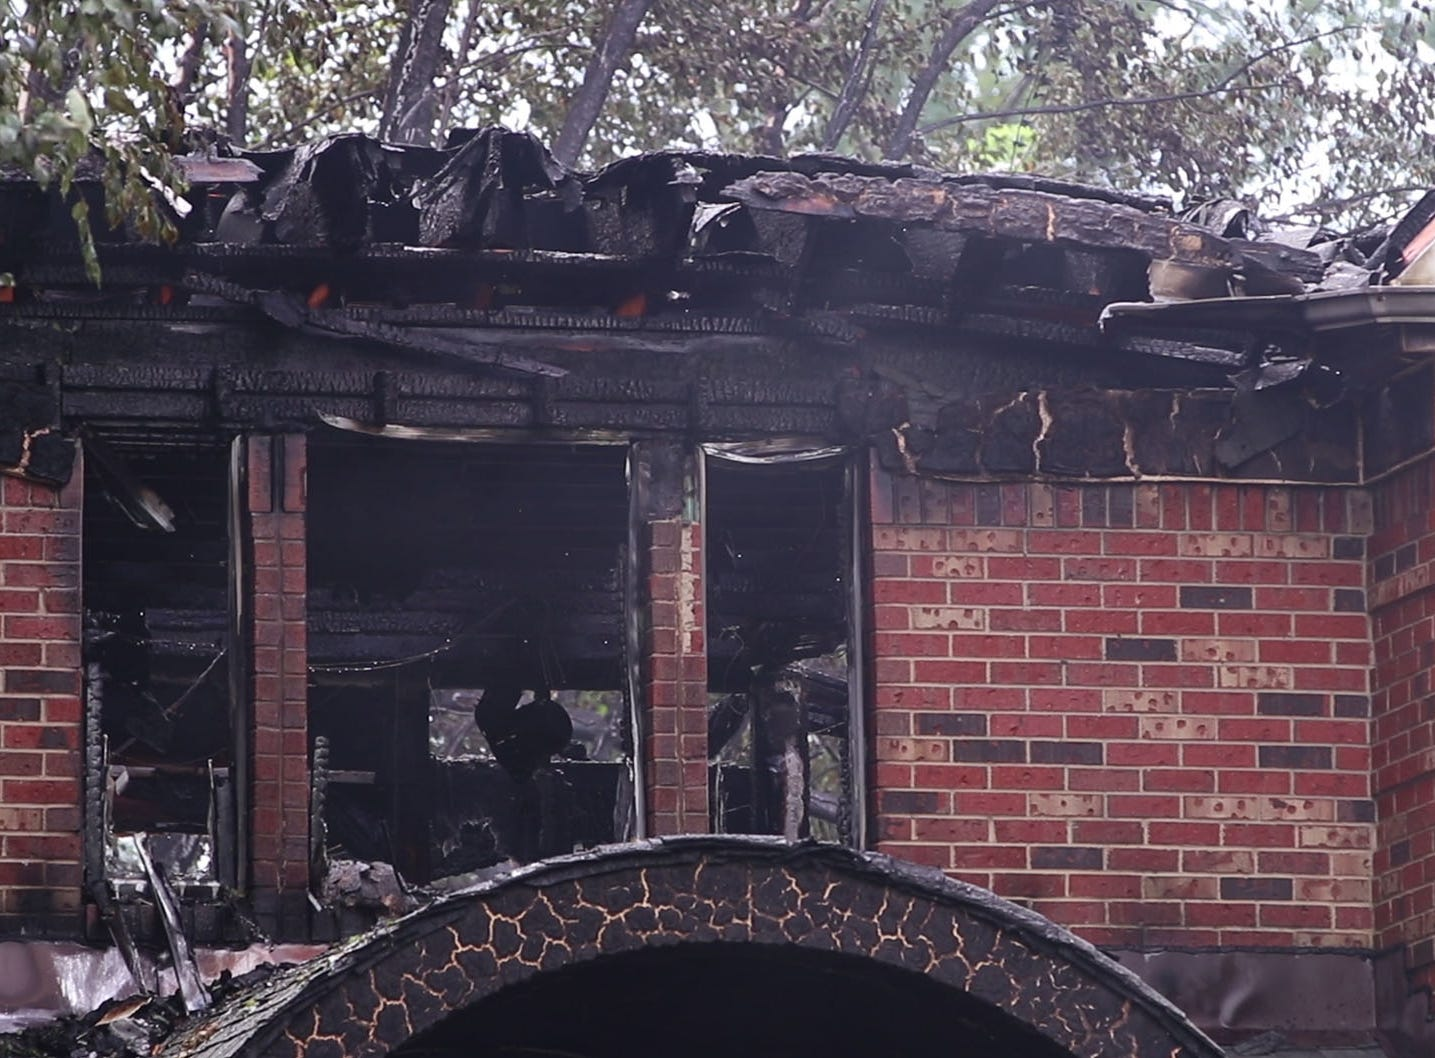 A home located at 6 Barrister Drive in Holmdel suffered severe damage after a fire broke out early morning on the back deck and quickly engulfed the structure.Holmdel, NJSaturday, September 1, 2018